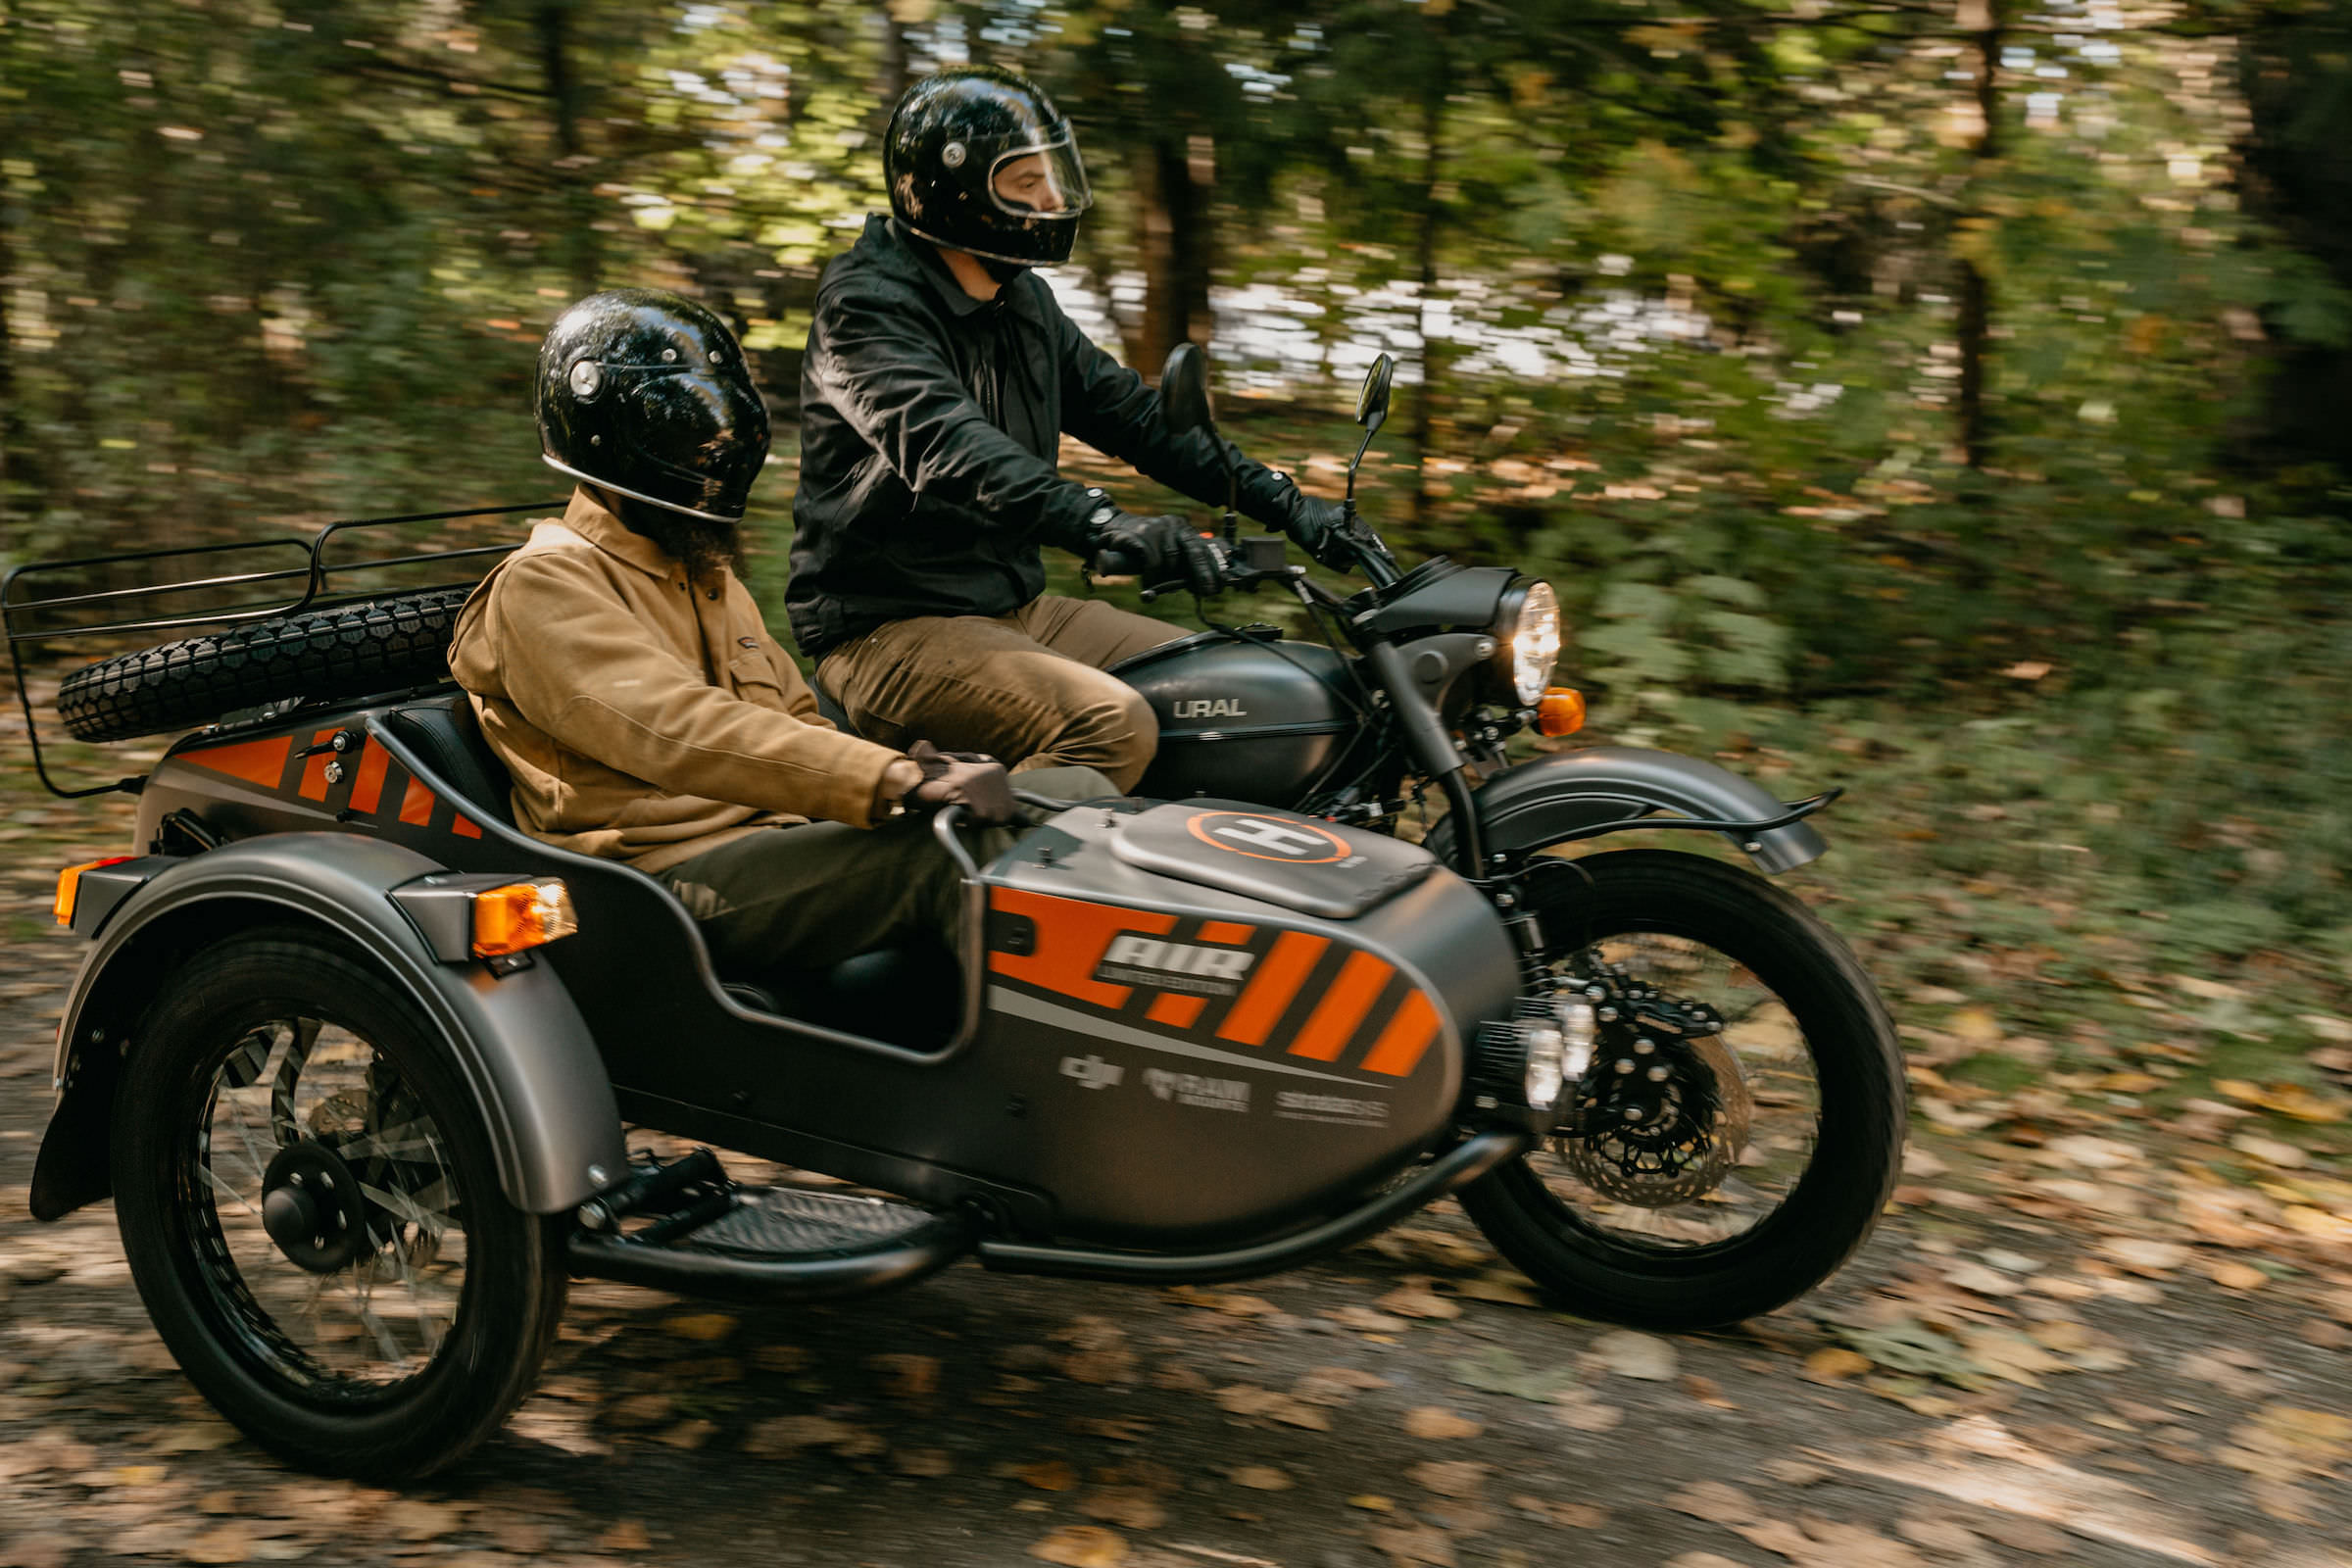 ural sidecar motorcycle air gear le motorcycles drone edition limited equipped topspeed own scouting hiconsumption order read visit